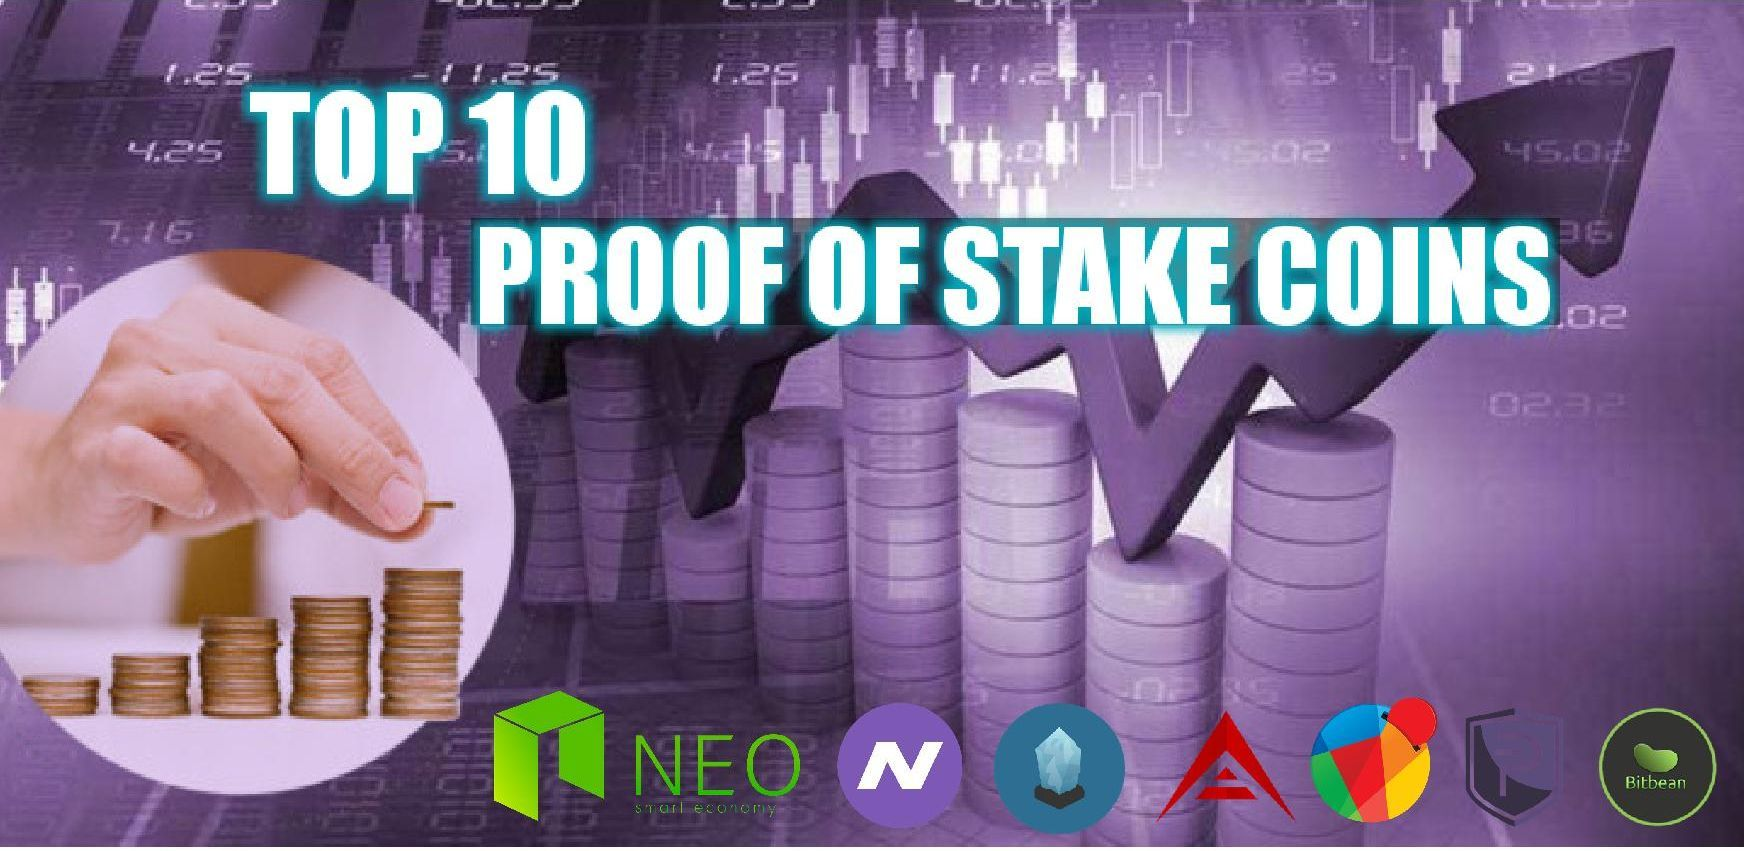 Top 10 ProofofStake (POS) coins Best Staking Coins